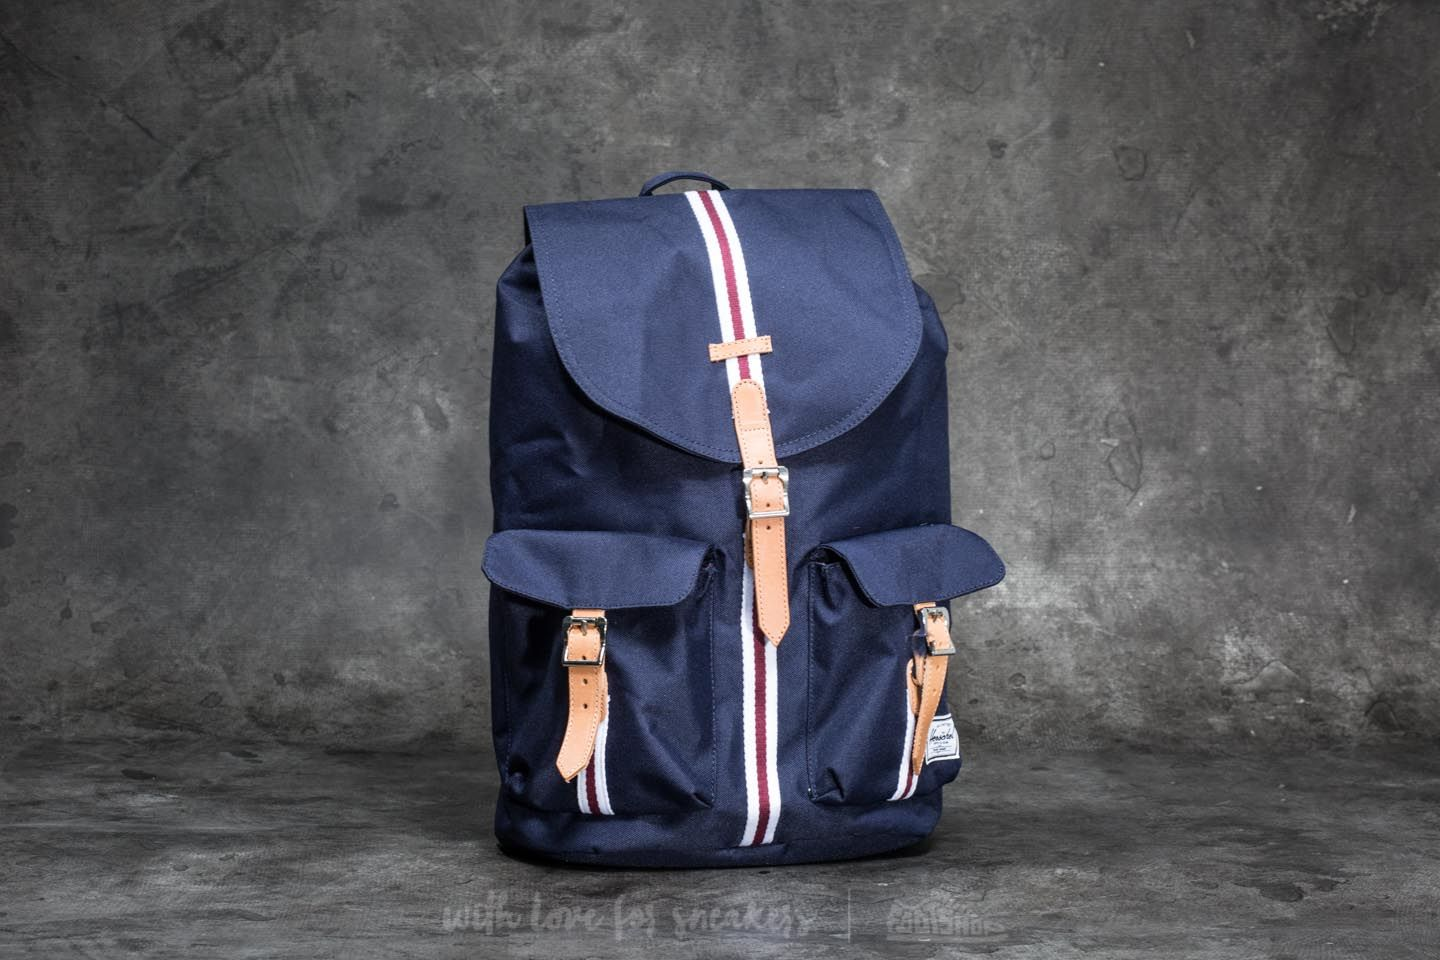 5842ad69414 Herschel Supply Co. Dawson Backpack Peacoat  White  Windsor Wine ...